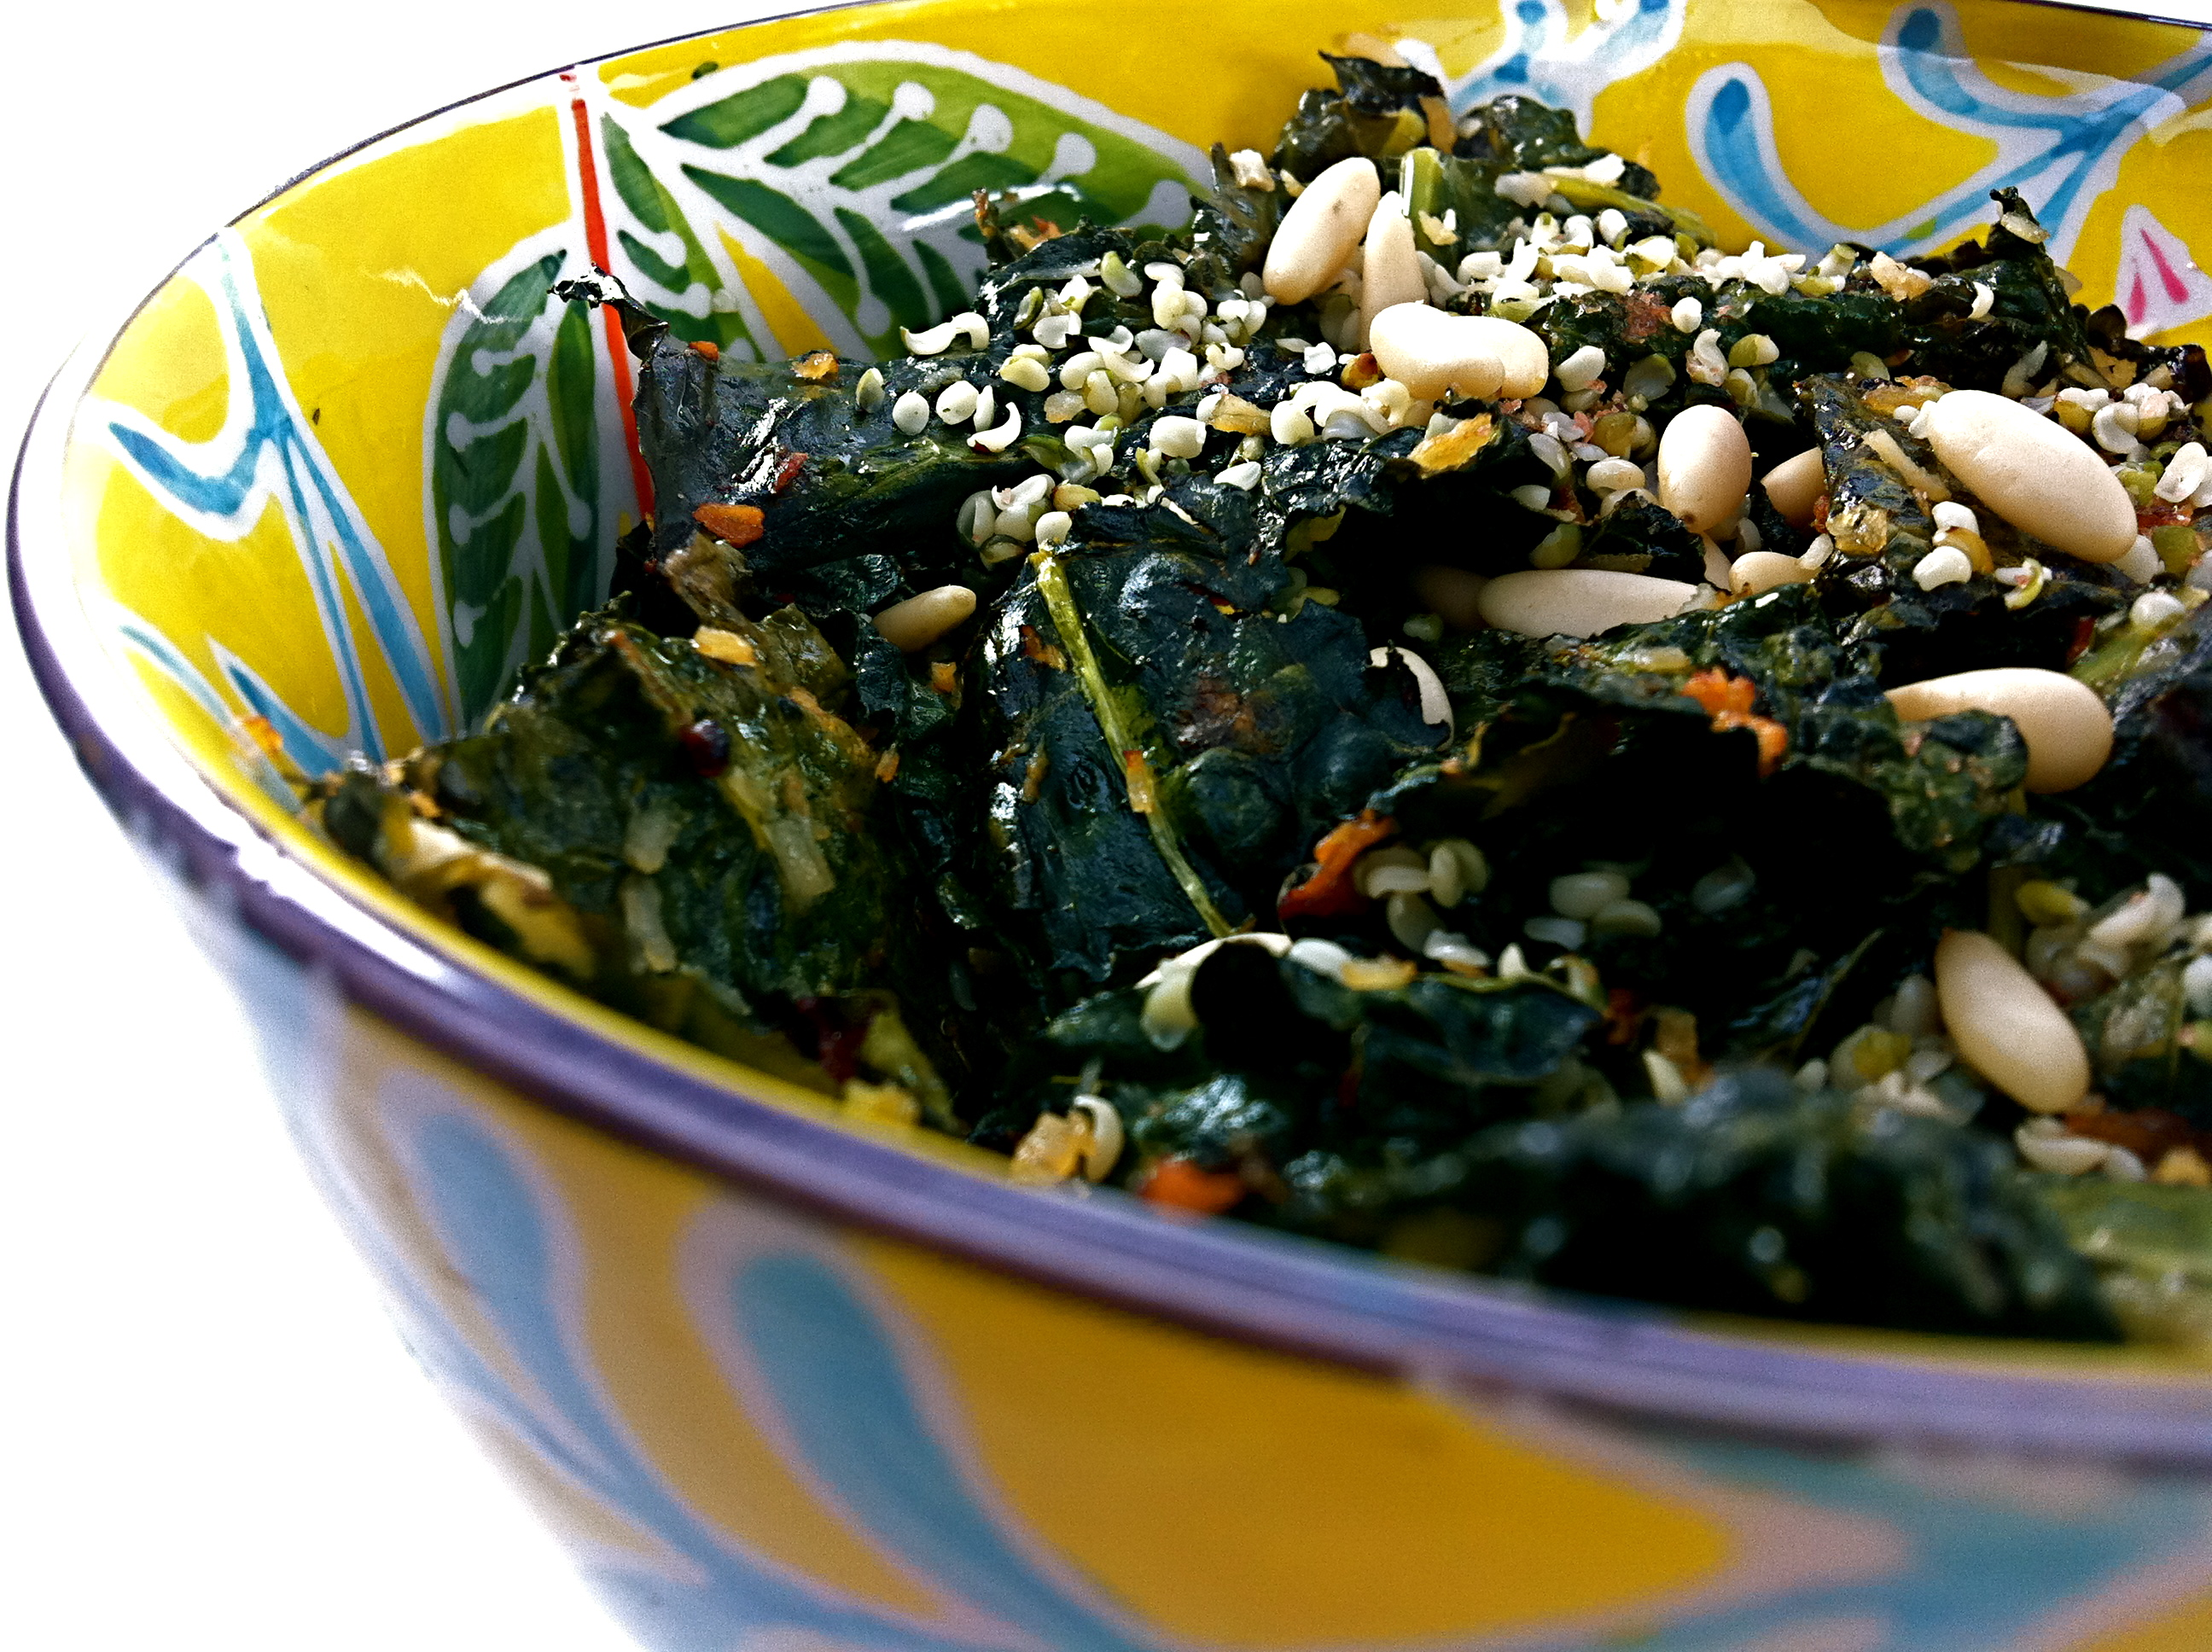 Coconut Curly Crispy Kale